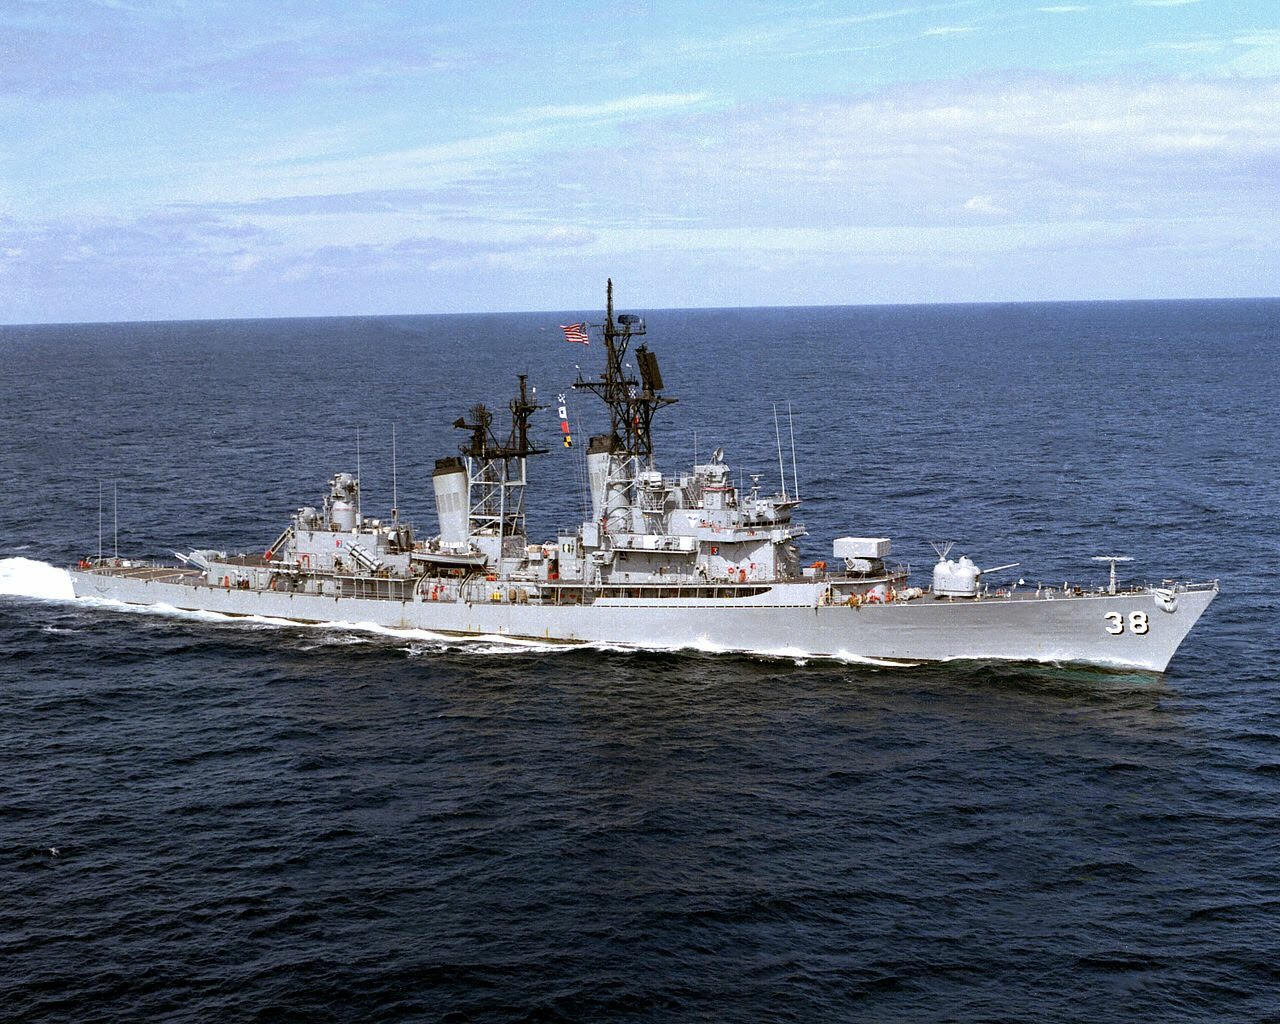 A US Navy frigate at sea.